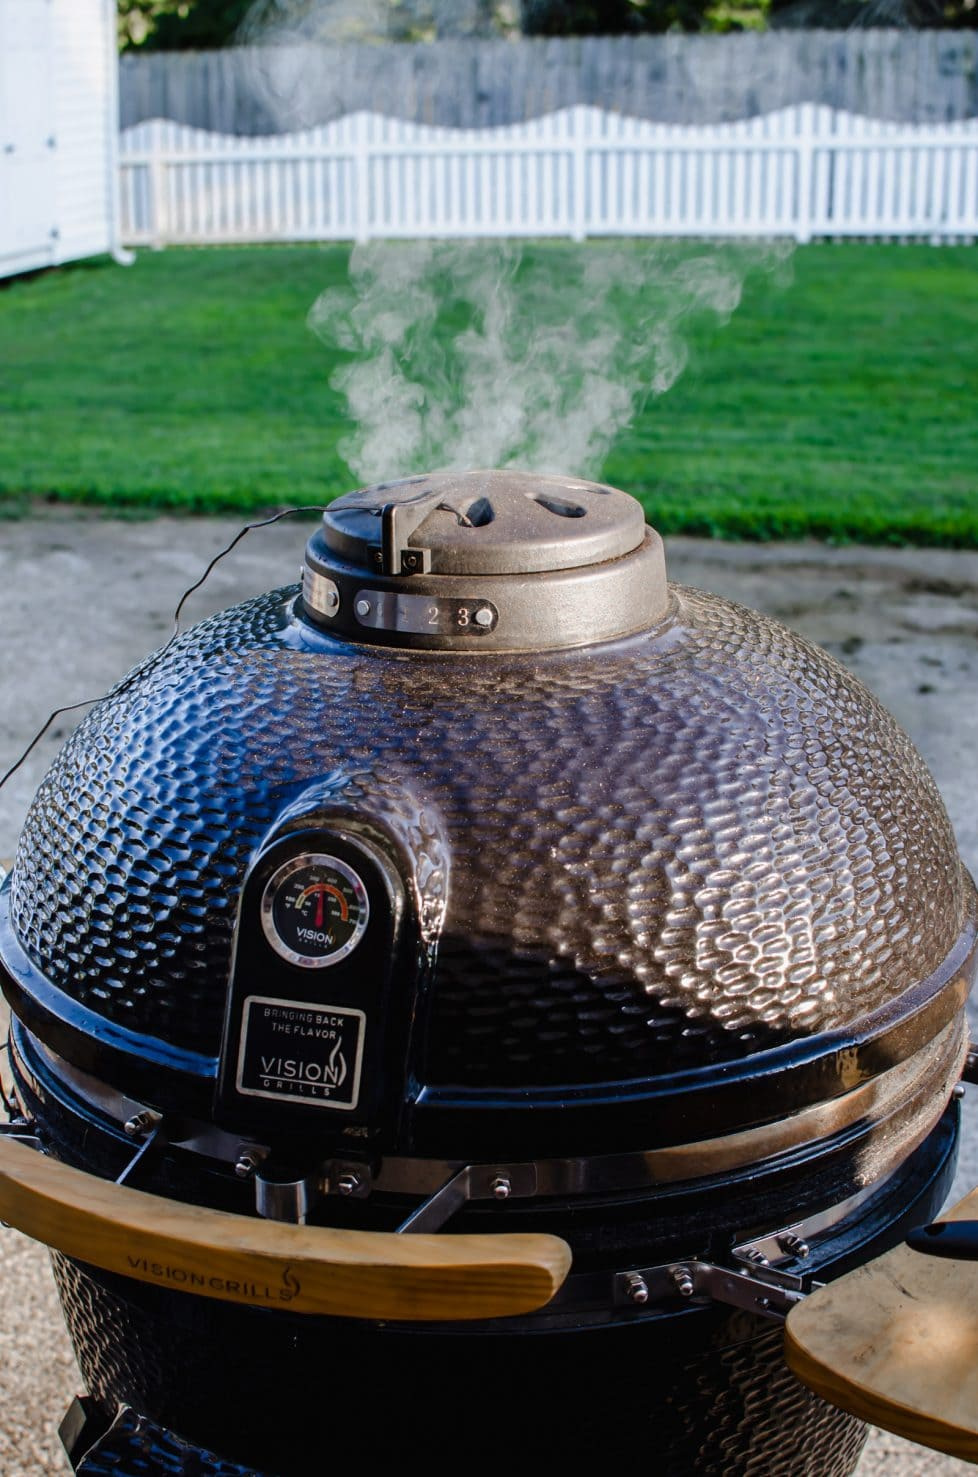 A shot of the top of a kamado grill with smoke coming out of the top vent.